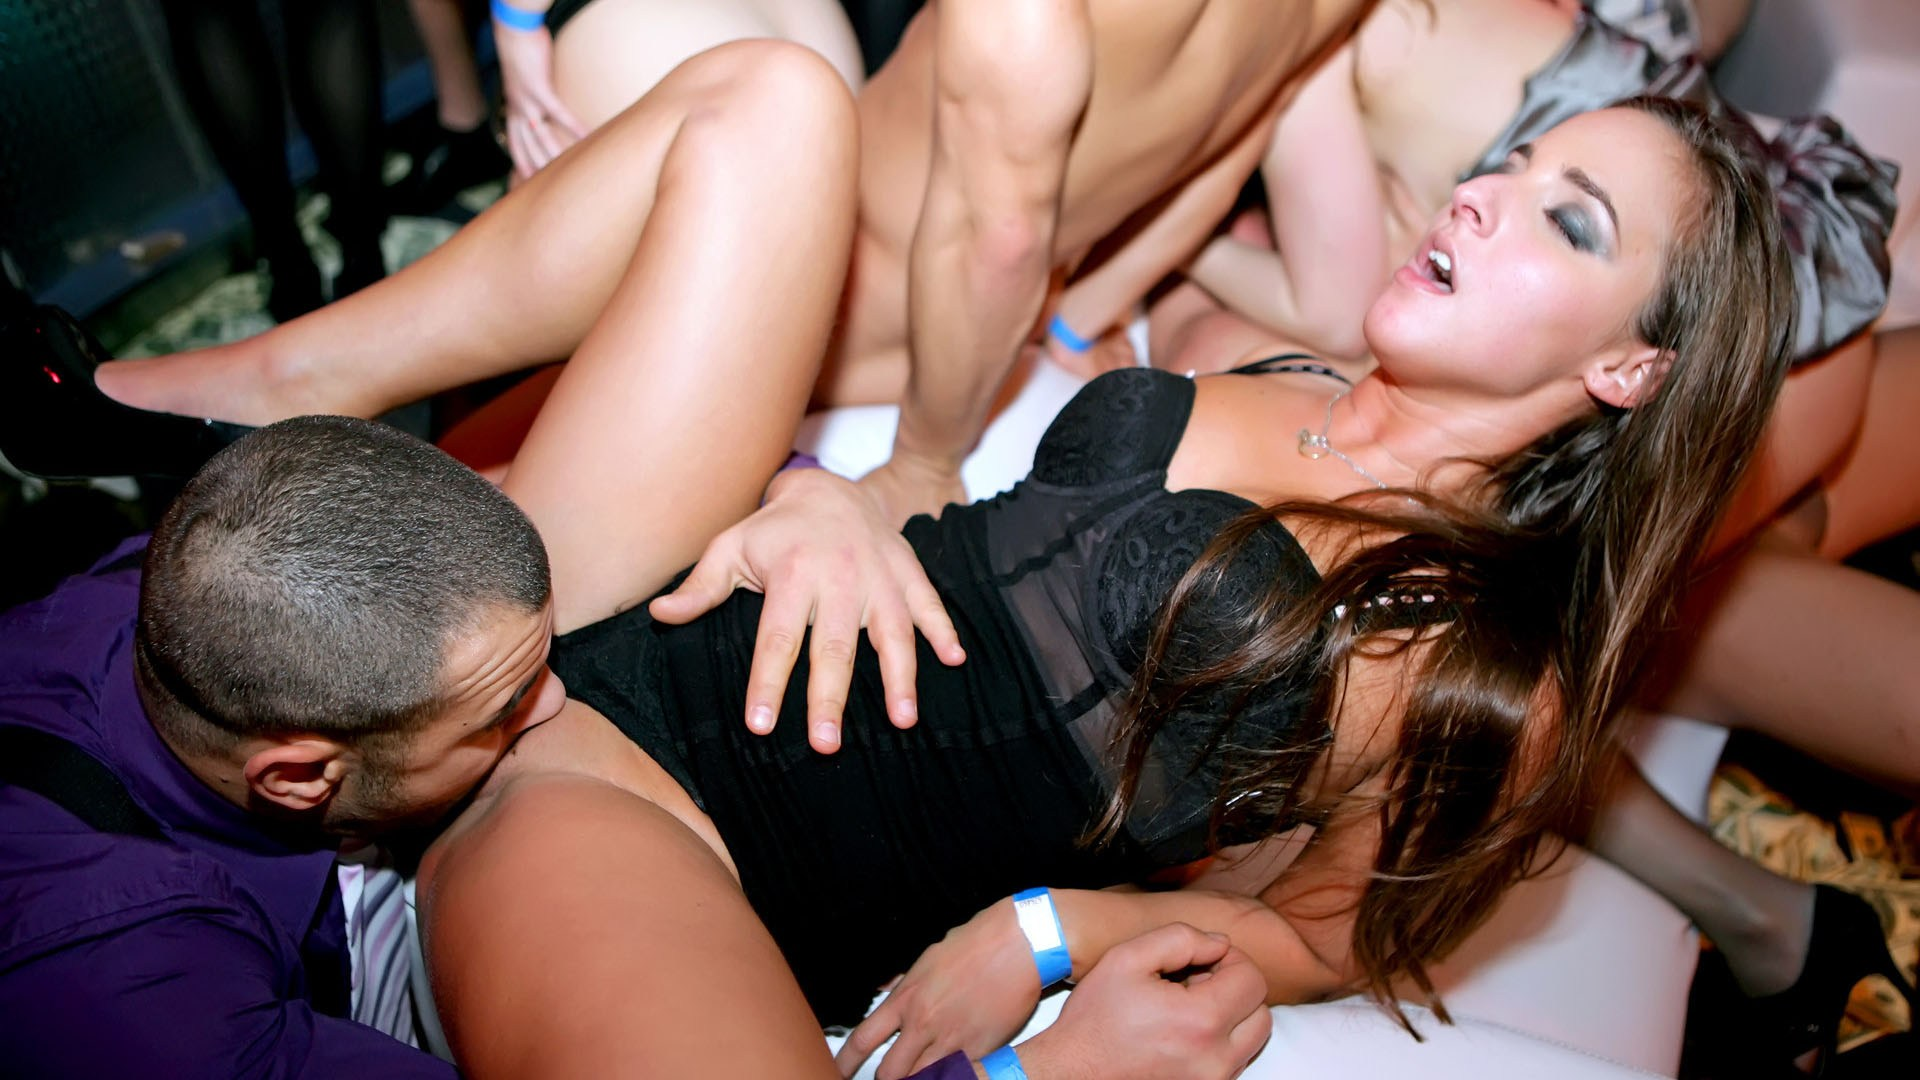 Free Party Porn In Hd